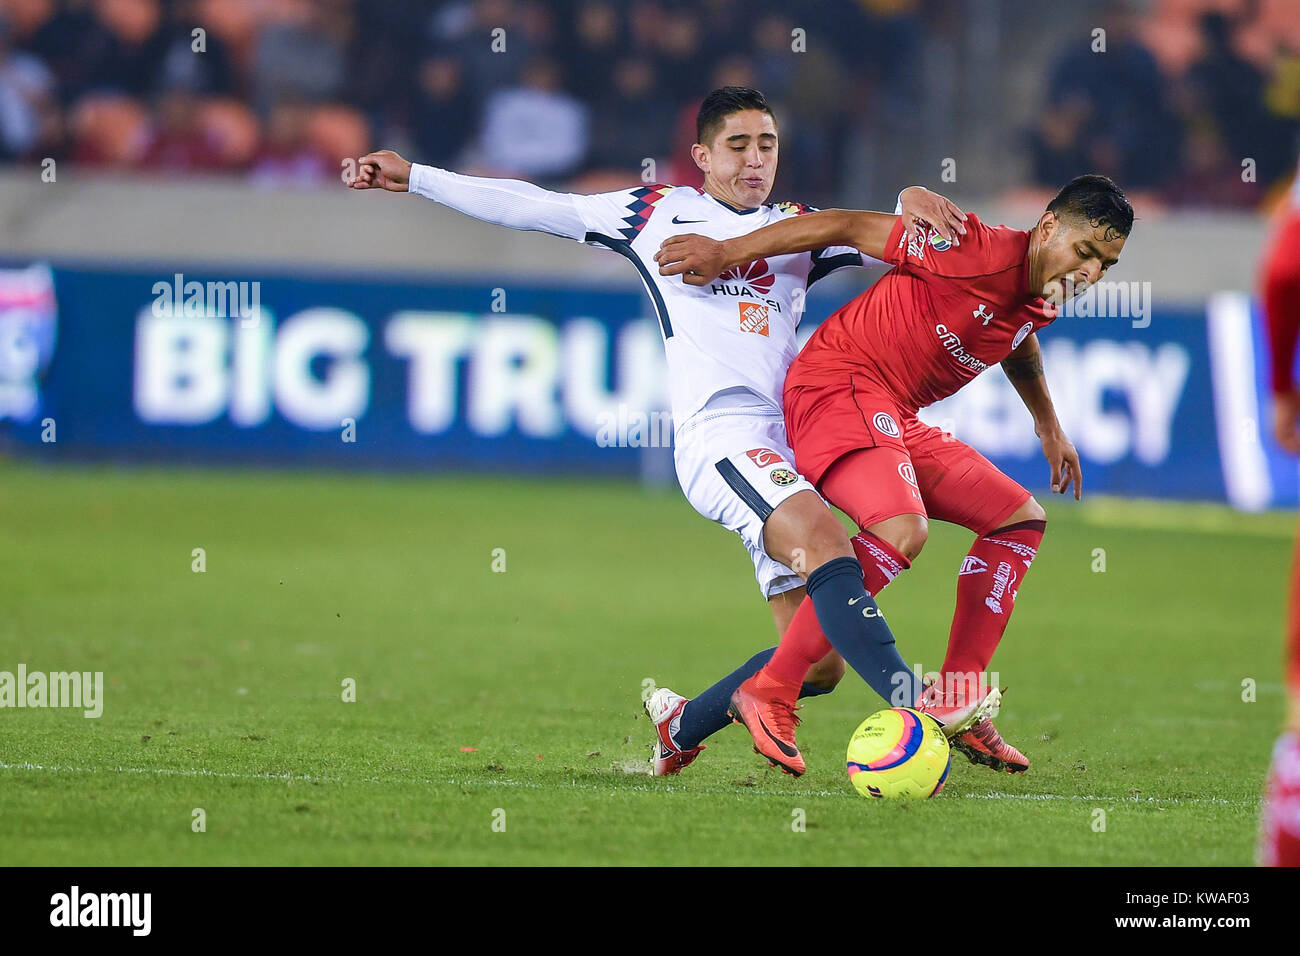 Houston, TX, USA. 30th Dec, 2017. América defender Enrique Cedillo (32) takes possession of the ball during - Stock Image